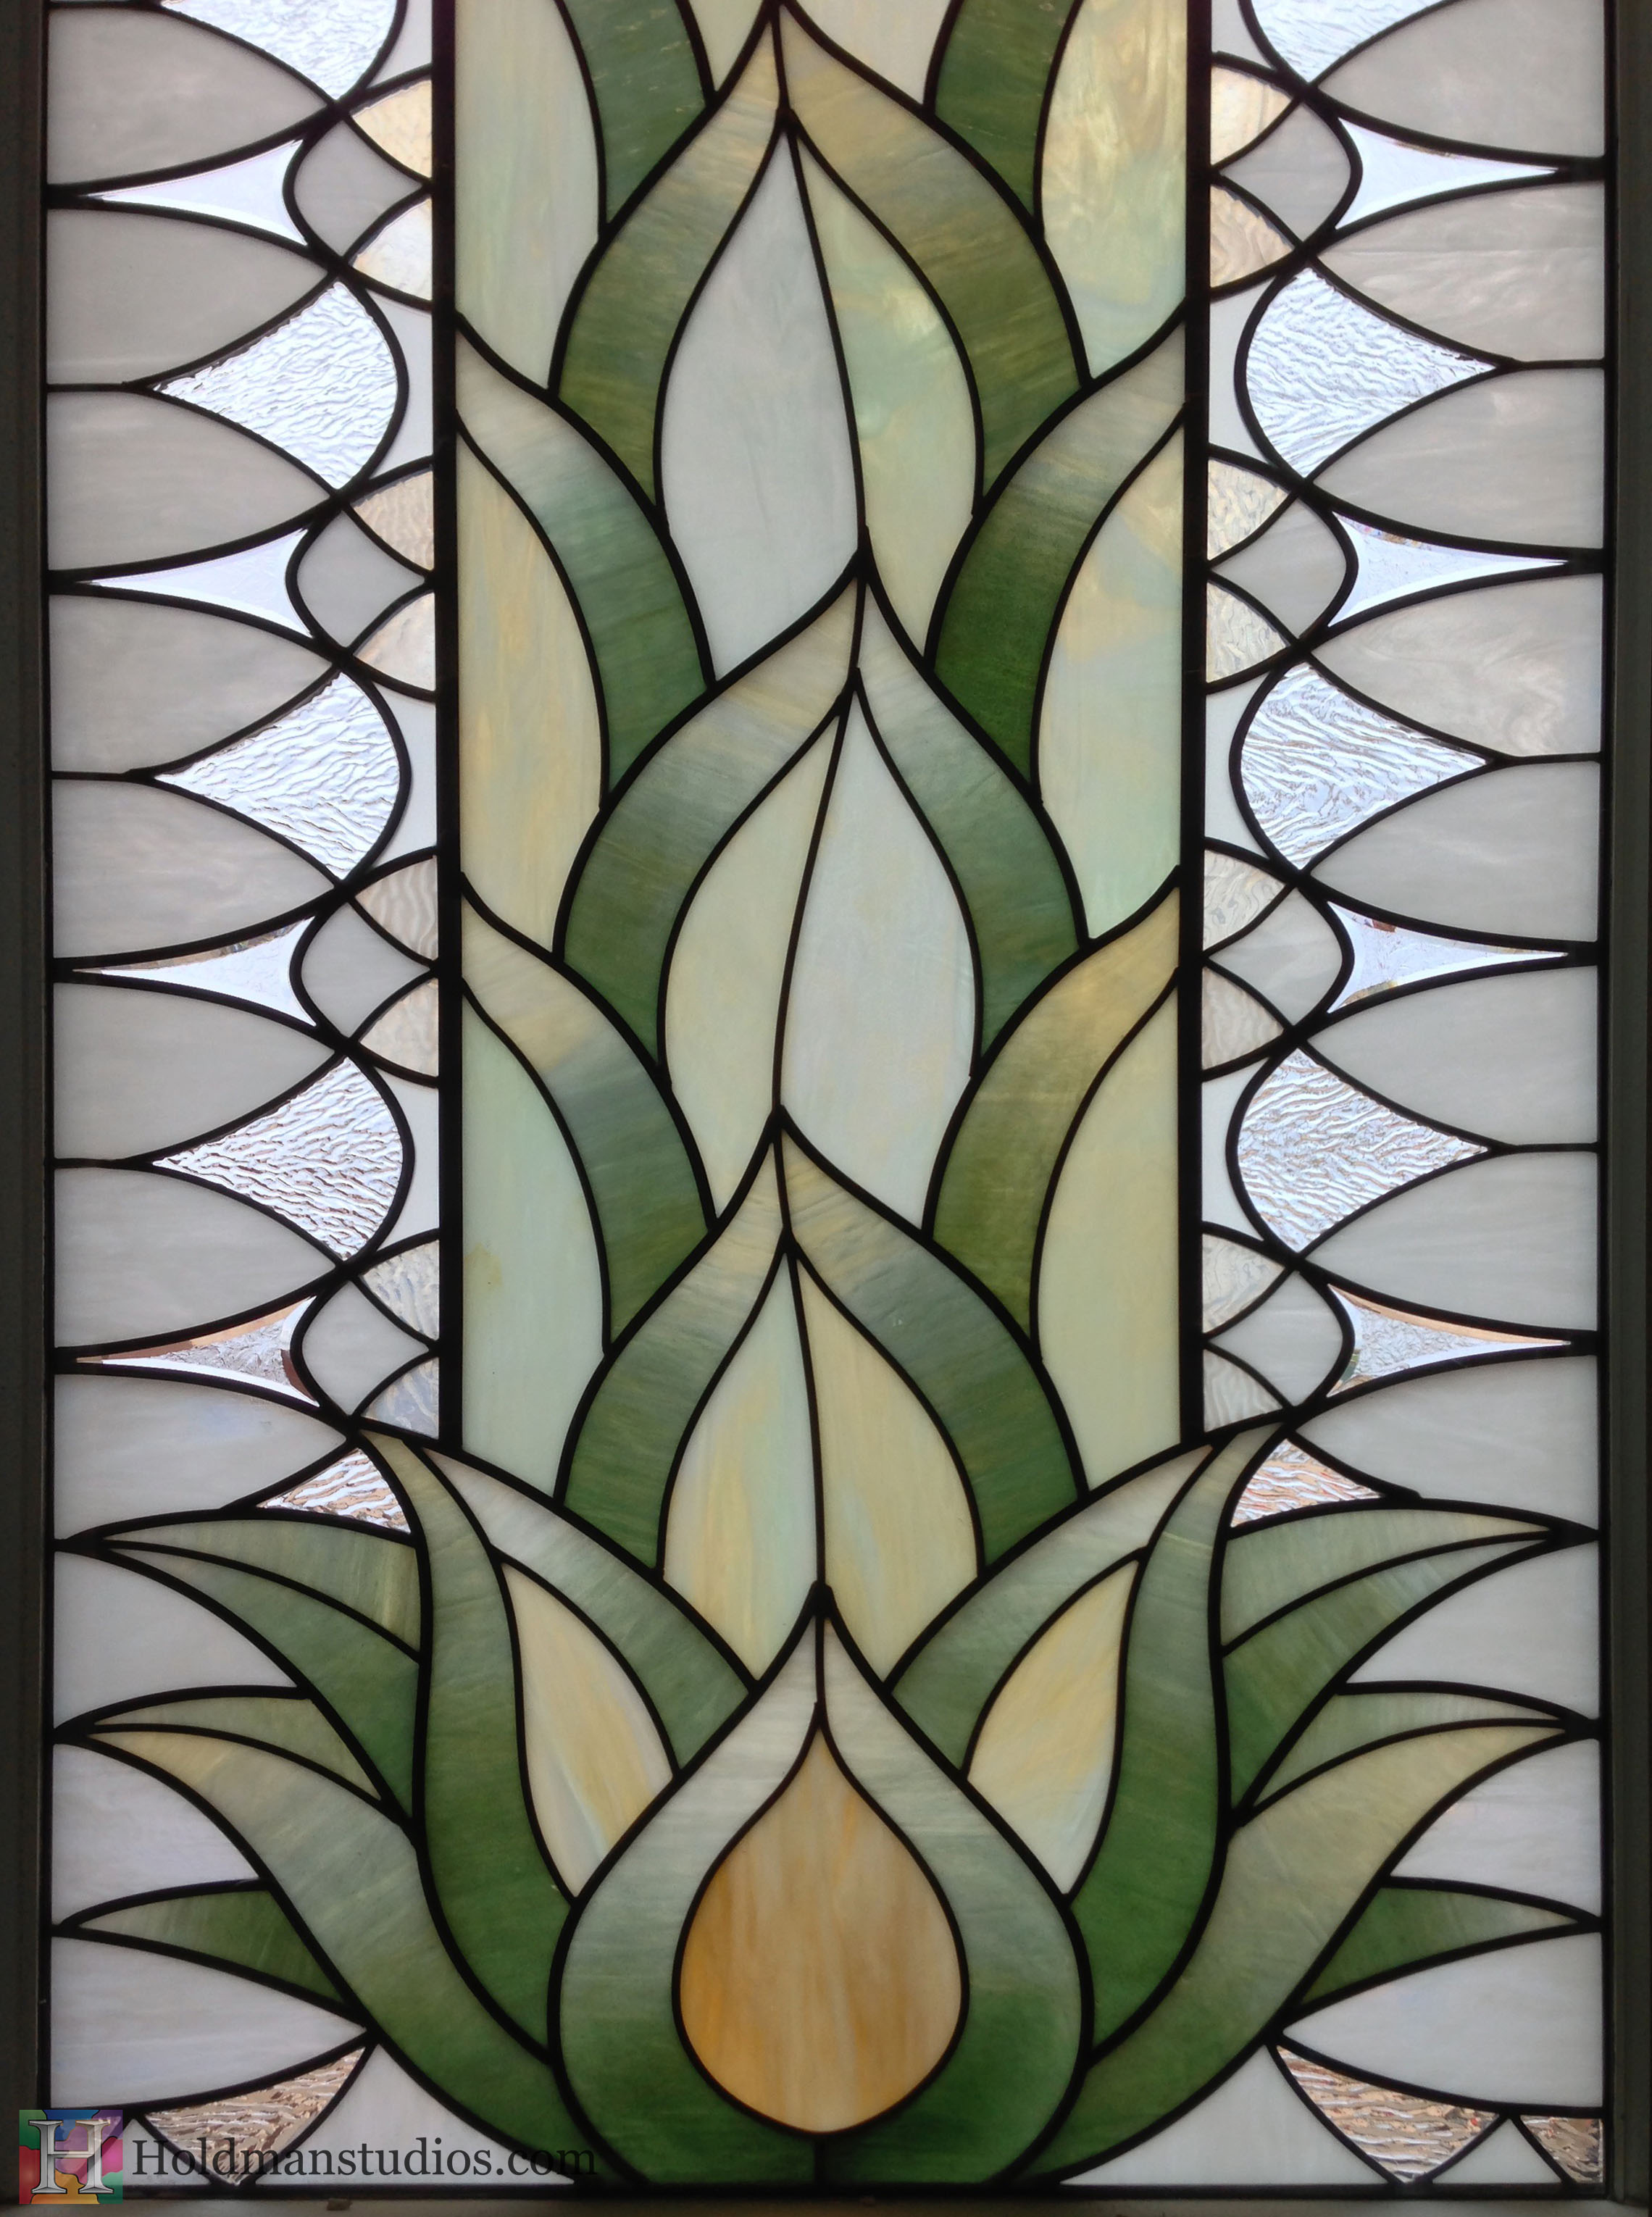 Holdman_Studios_Stained_Art_Glass_LDS_Mormon_Temple_Gilbert_Arizona_Agave_Plant_Closeup.jpg